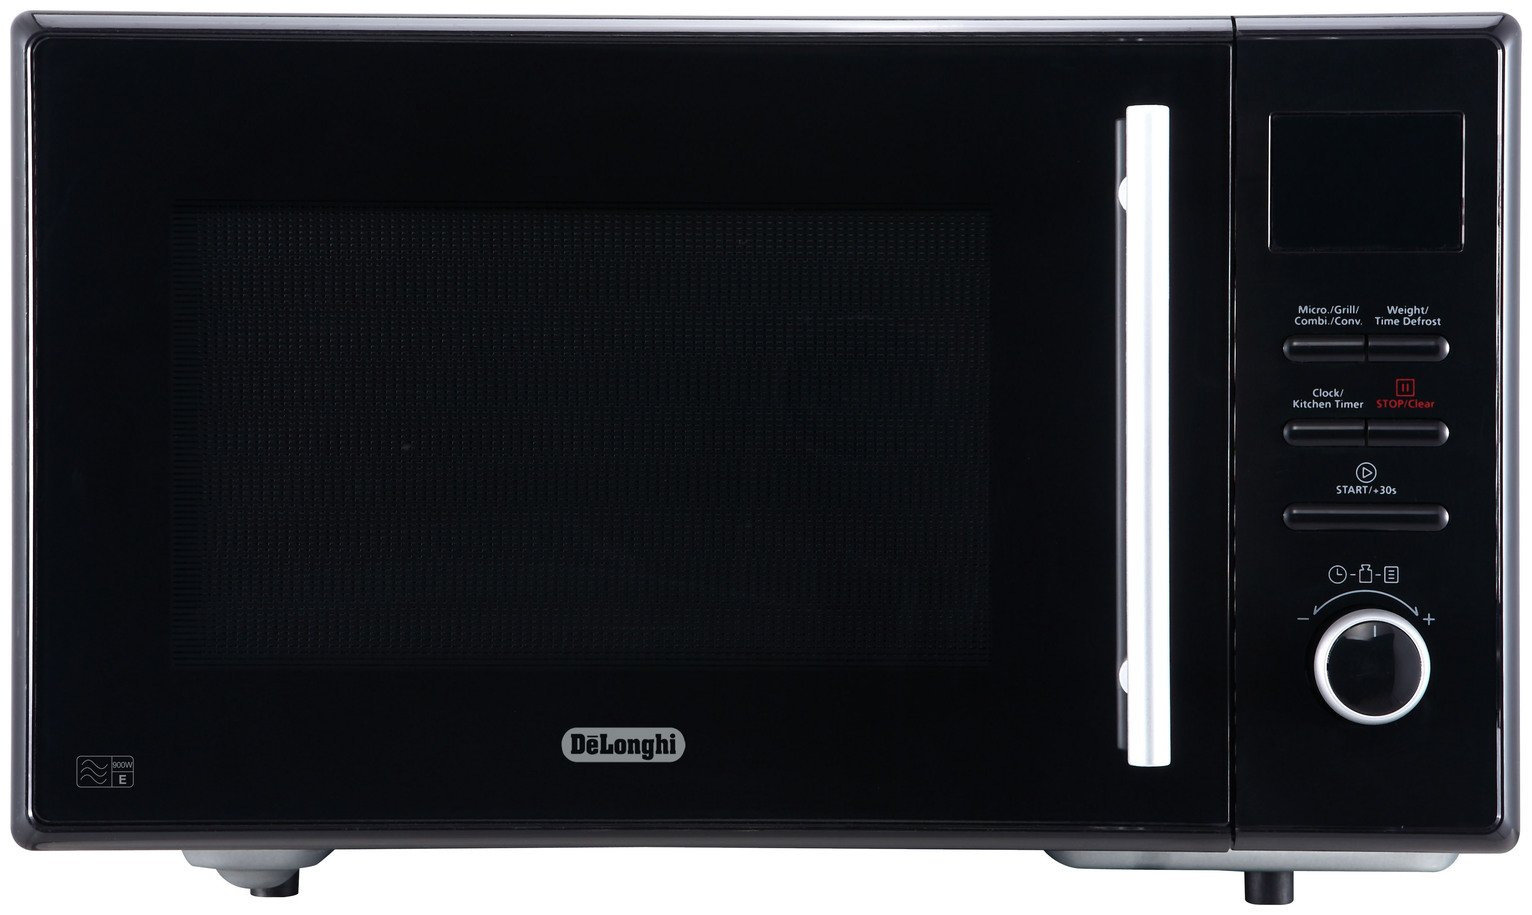 Image of De'Longhi 900W Combination Microwave - Black